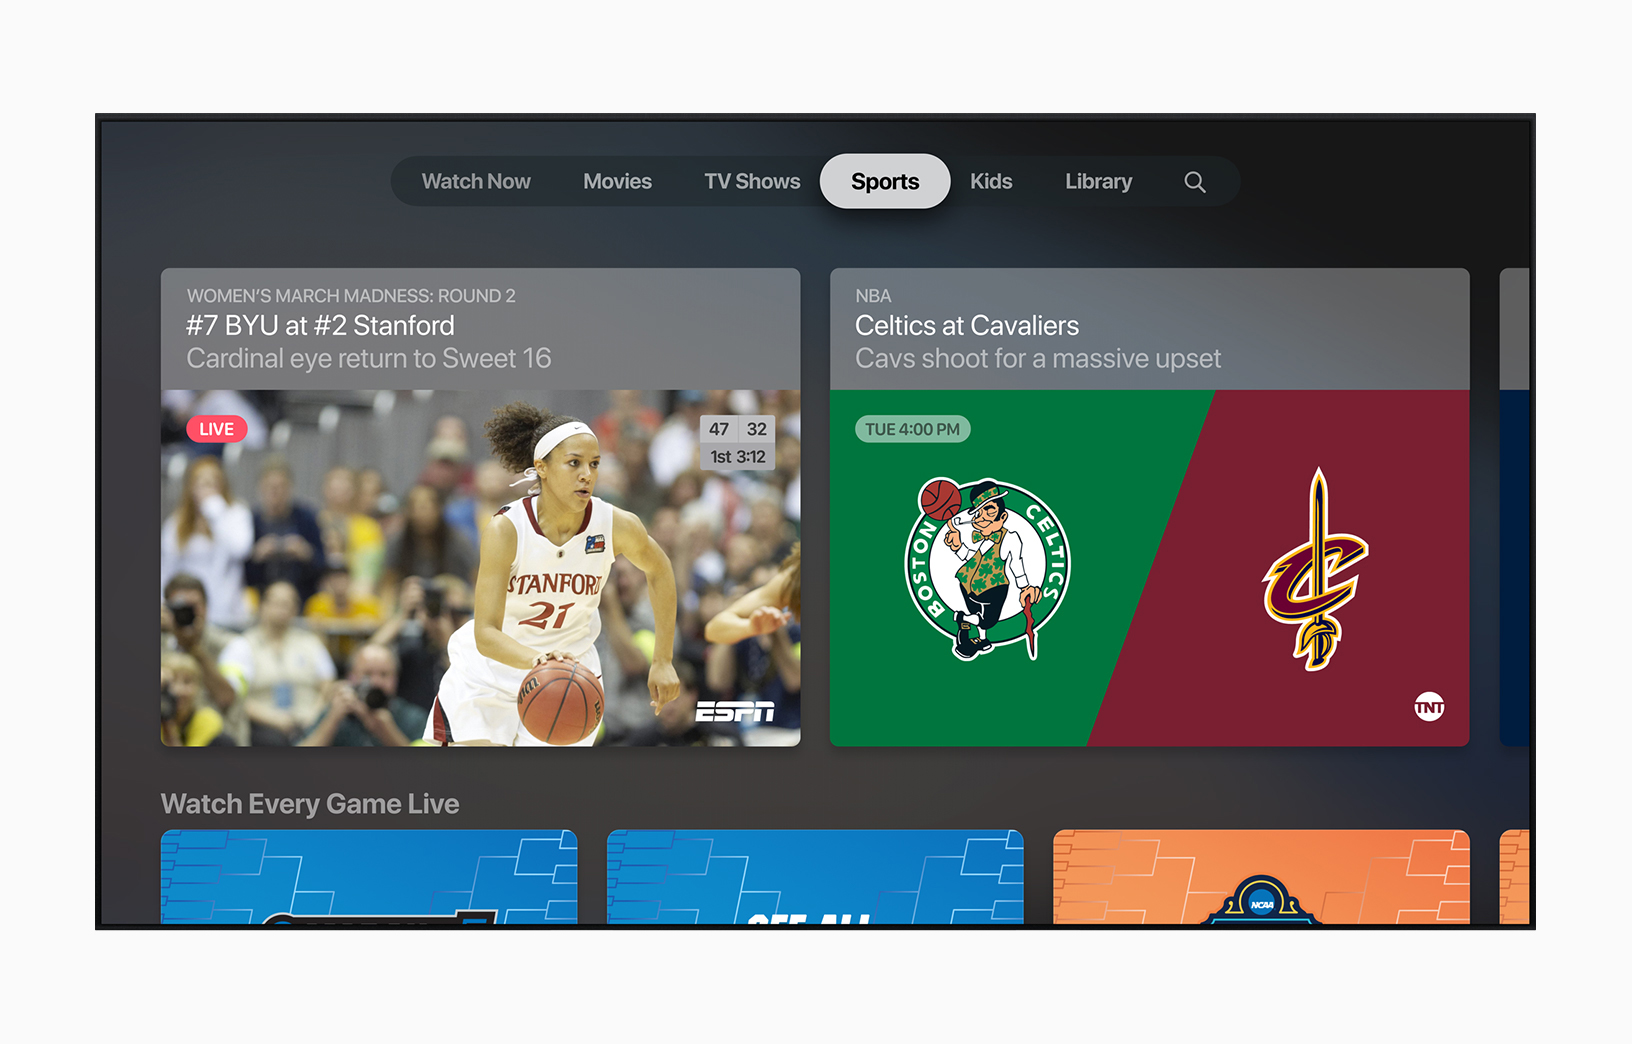 Apple_TV_app_sports-screen_032519.jpg